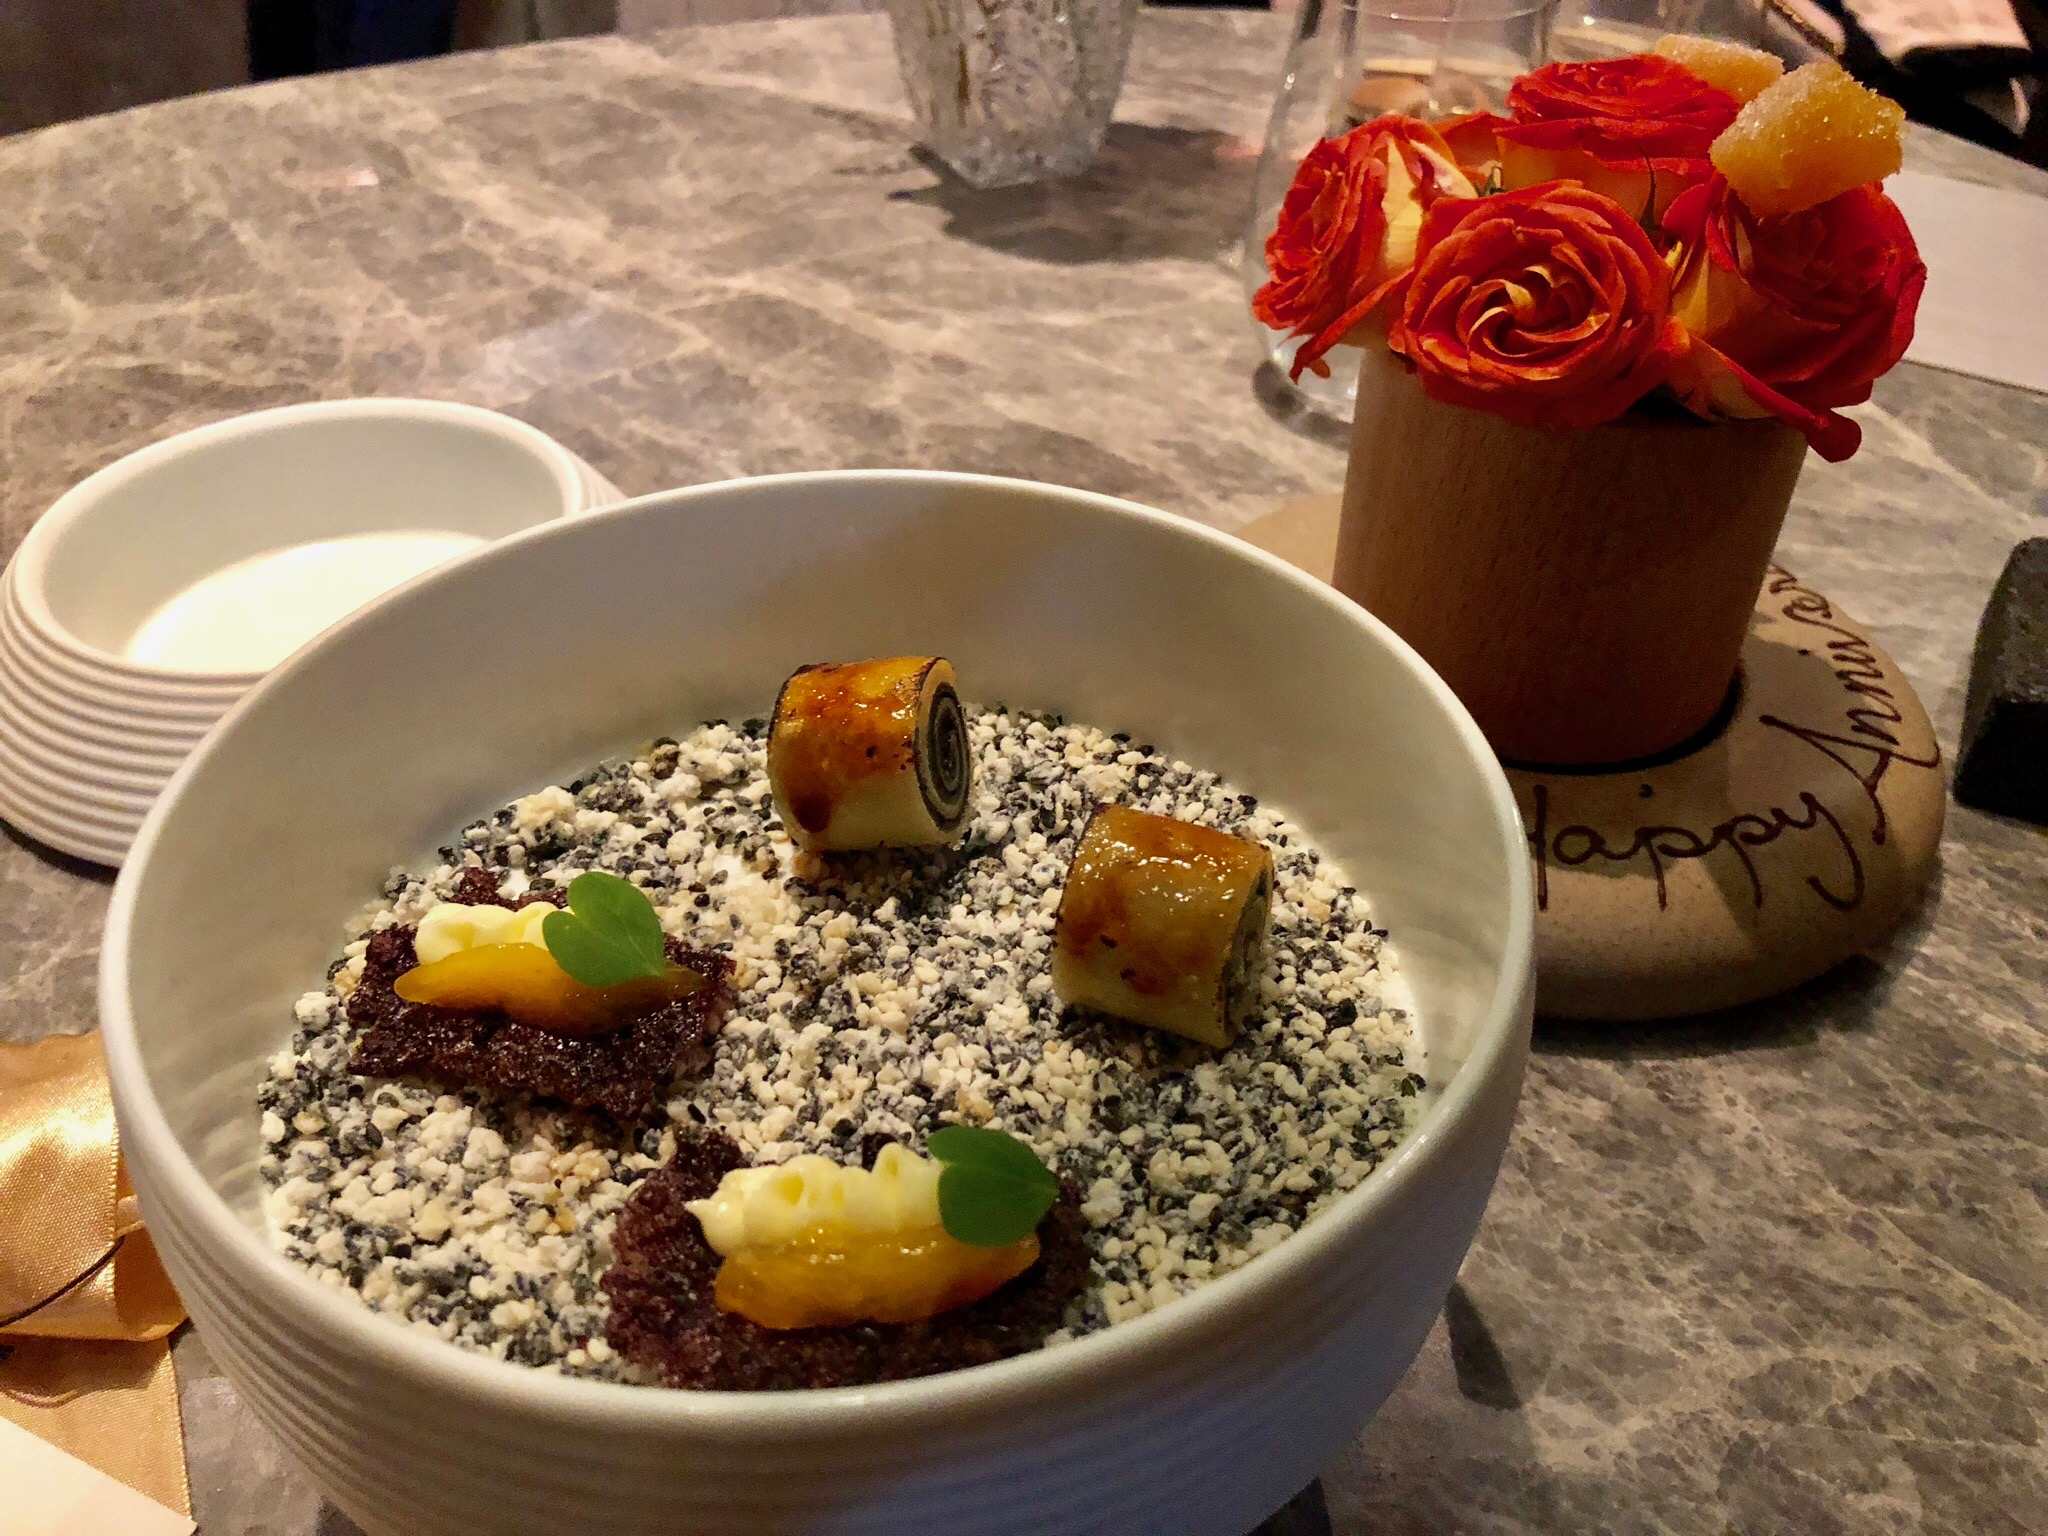 Sesame Mille Crepe: Pretty to look at but taste wise was nothing memorable.Black Rice & Persimmon Crisp: Good but much rather have another round of the mocha or the strawberry dessert